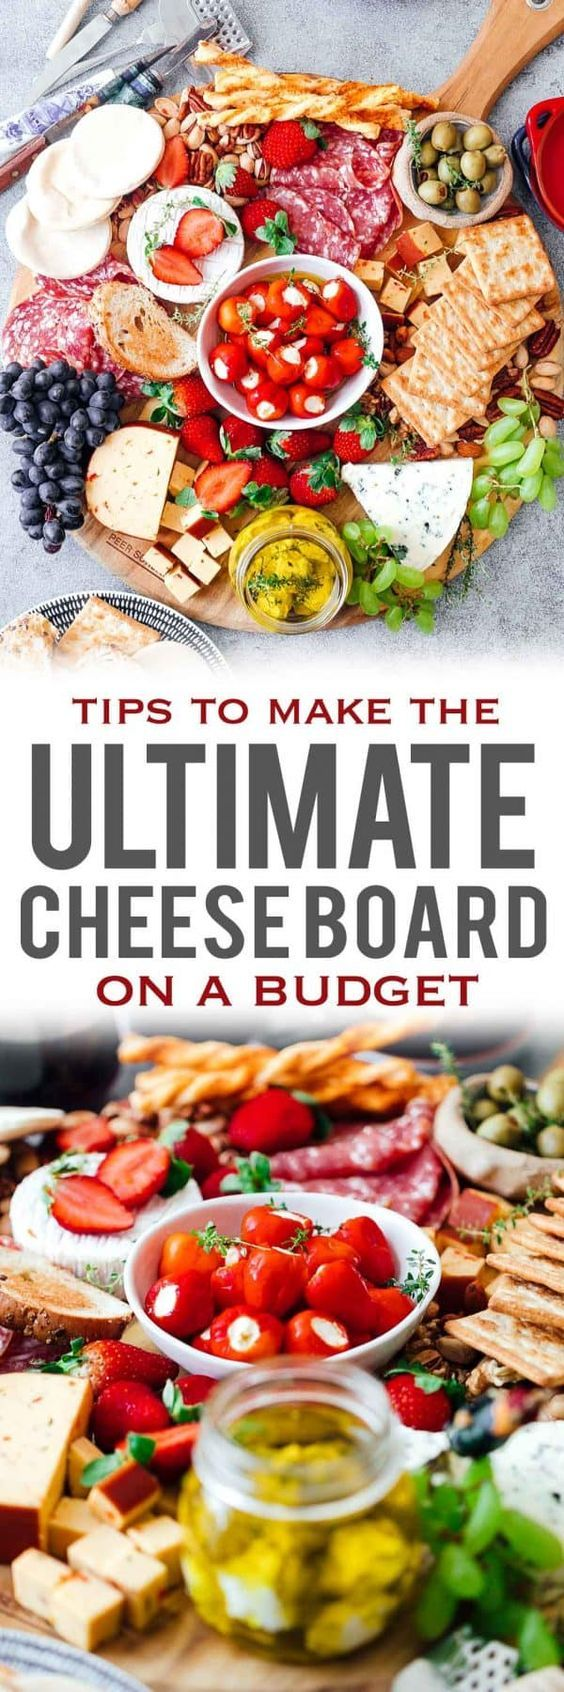 How To Make The Ultimate Wine And Cheese Board On A Budget Appetizers For A Crowd Appetizer Recipes Budget Appetizers